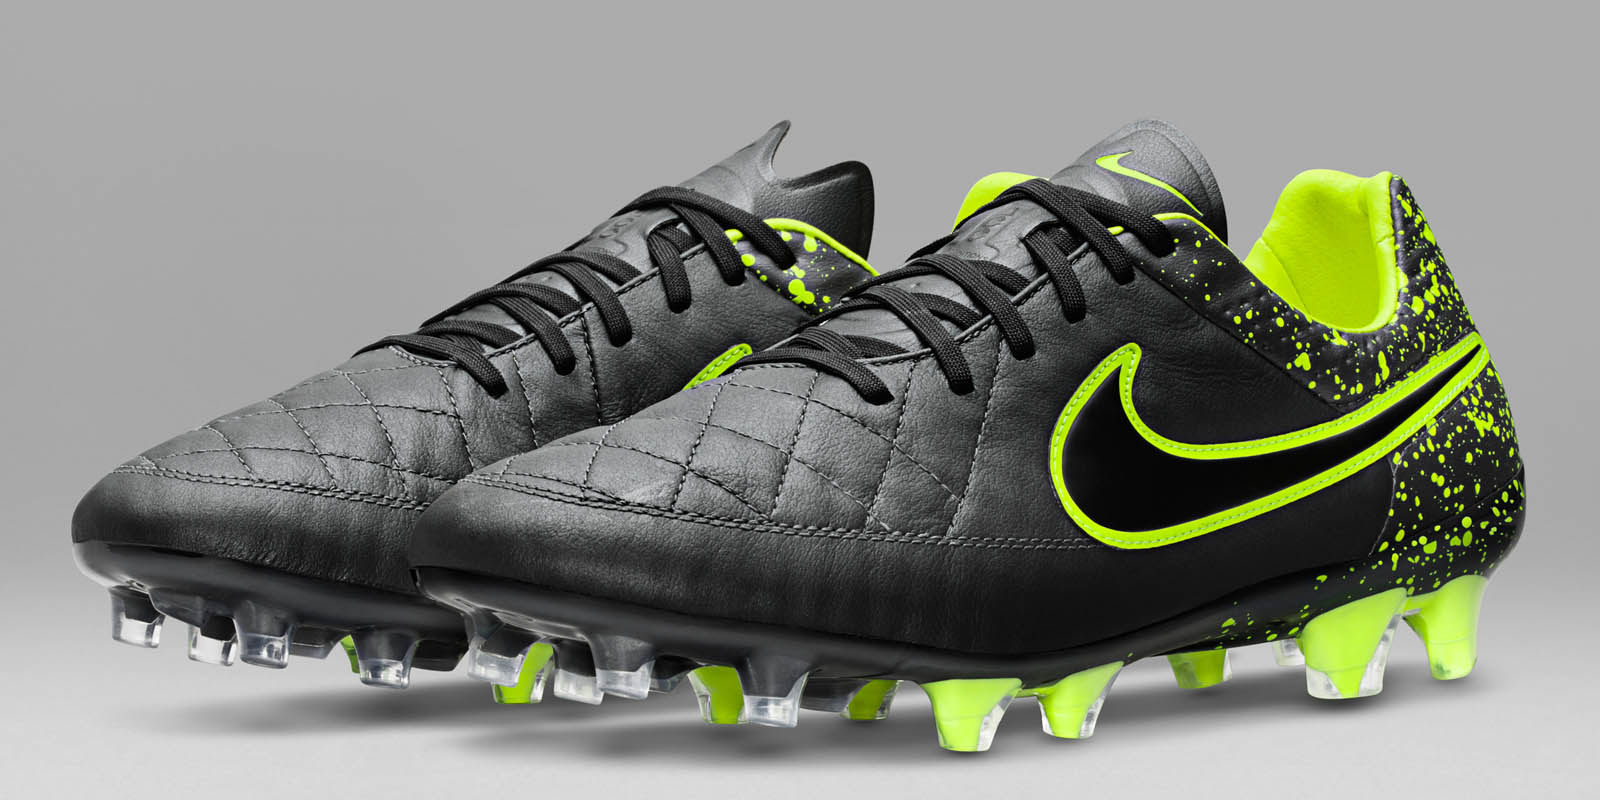 new nike soccer cleats coming out